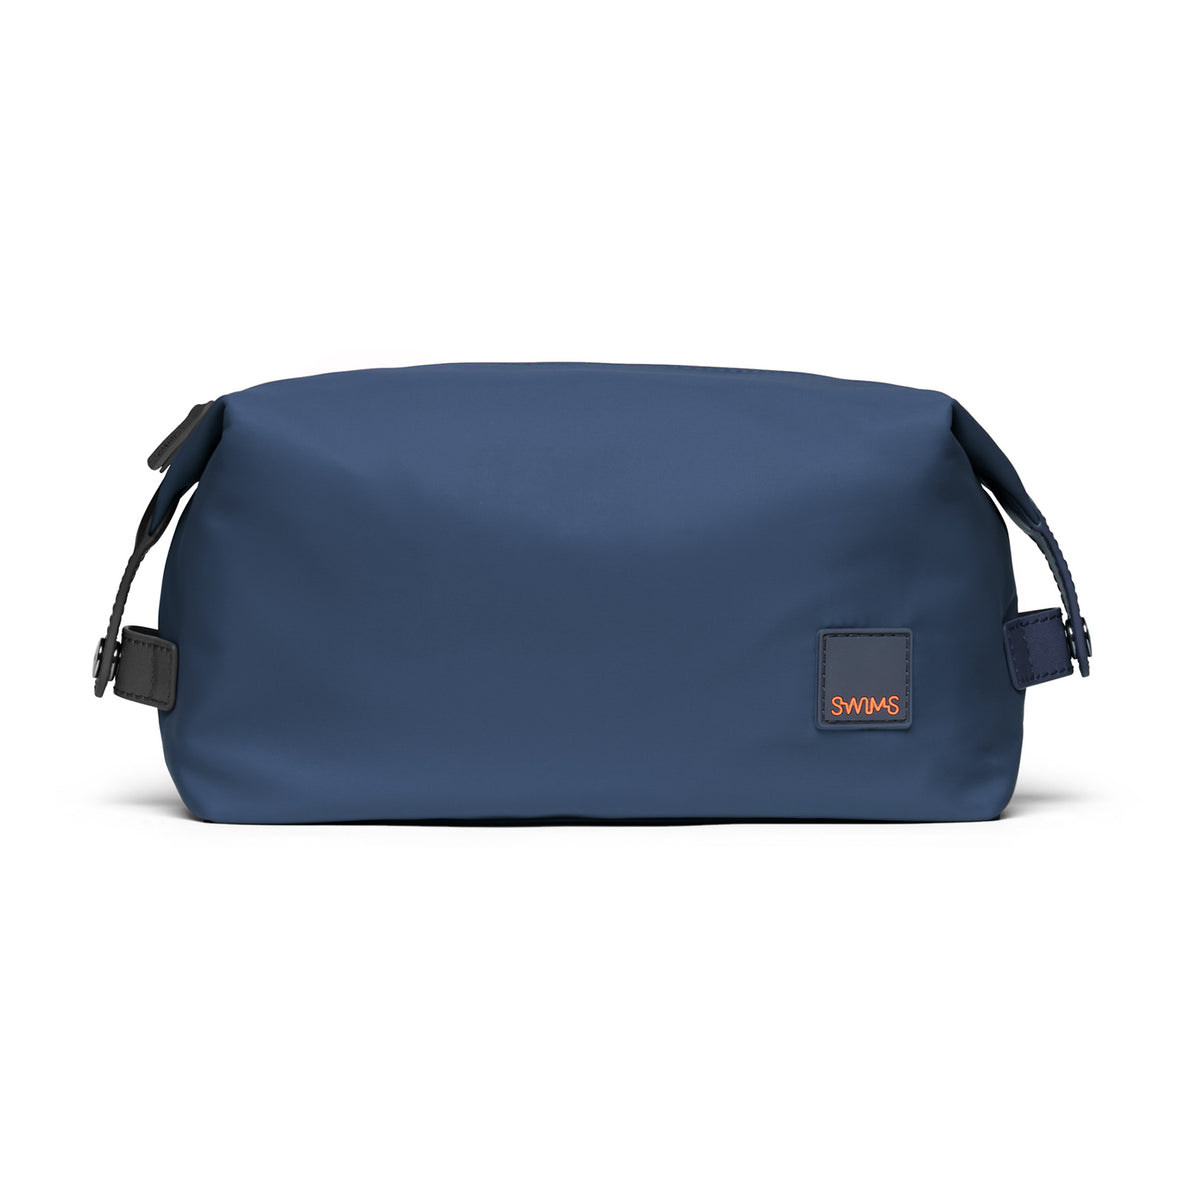 Necessaire - background::white,variant::Navy